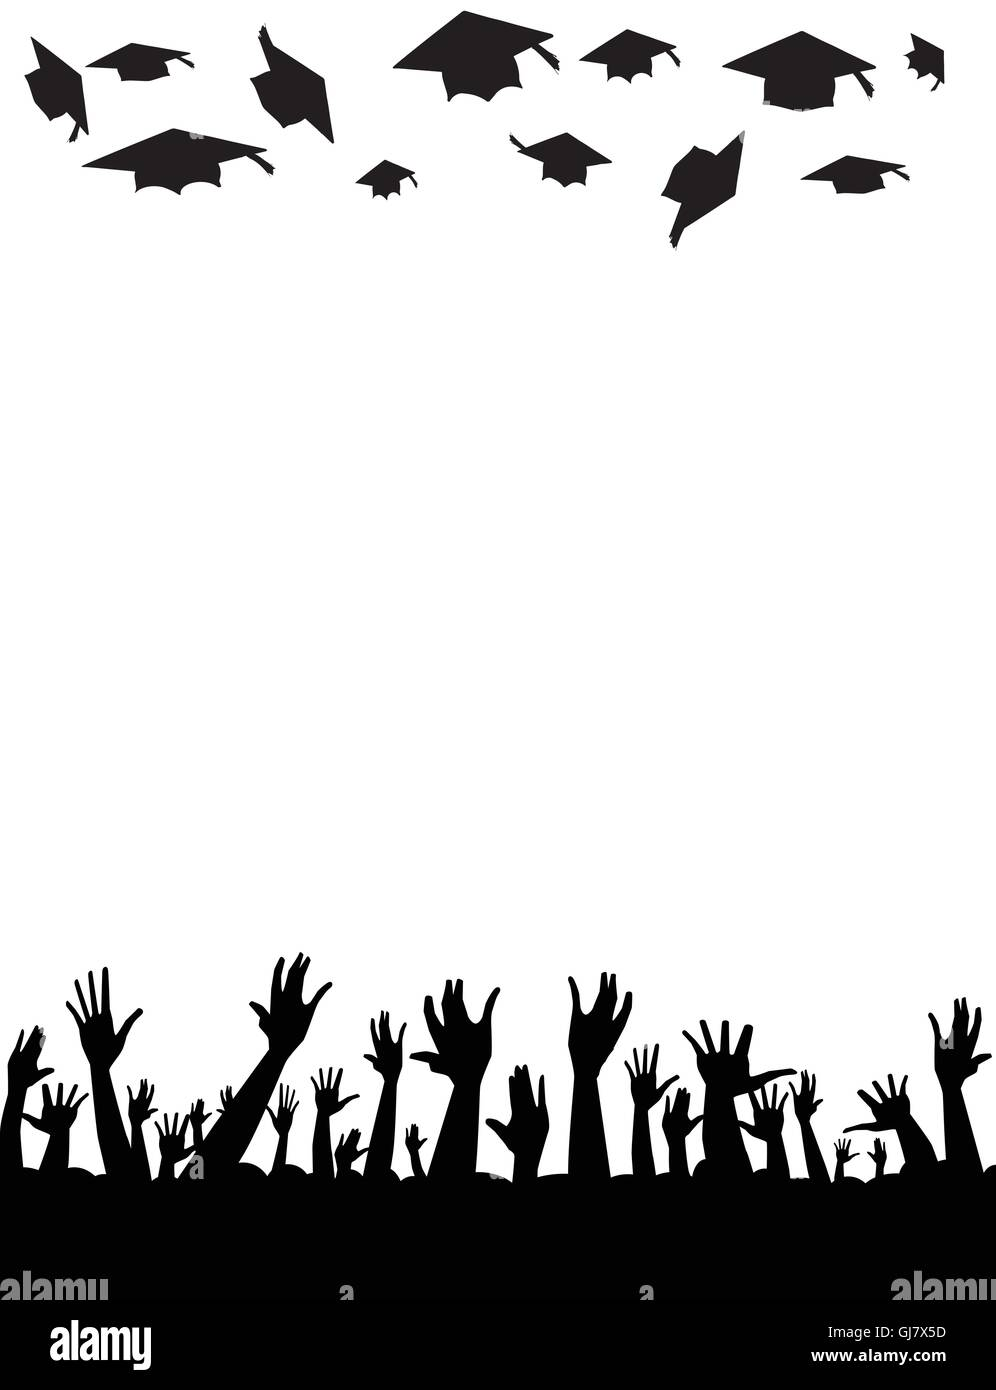 Hands raised in the air throwing the cap high - Stock Vector